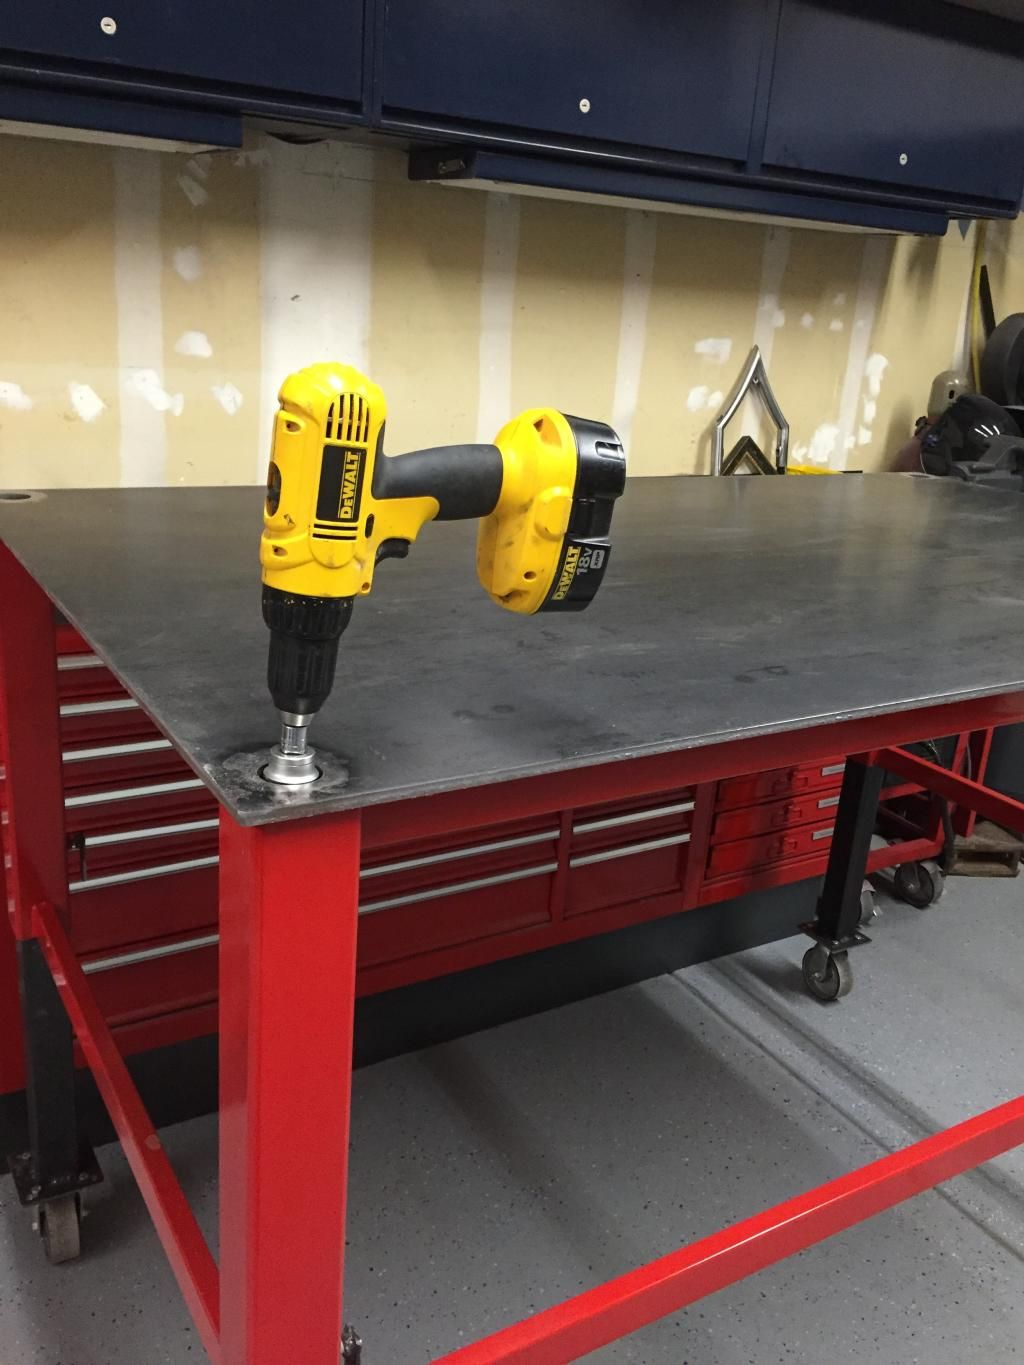 Adjustable Welding Shop Table The Garage Journal Board